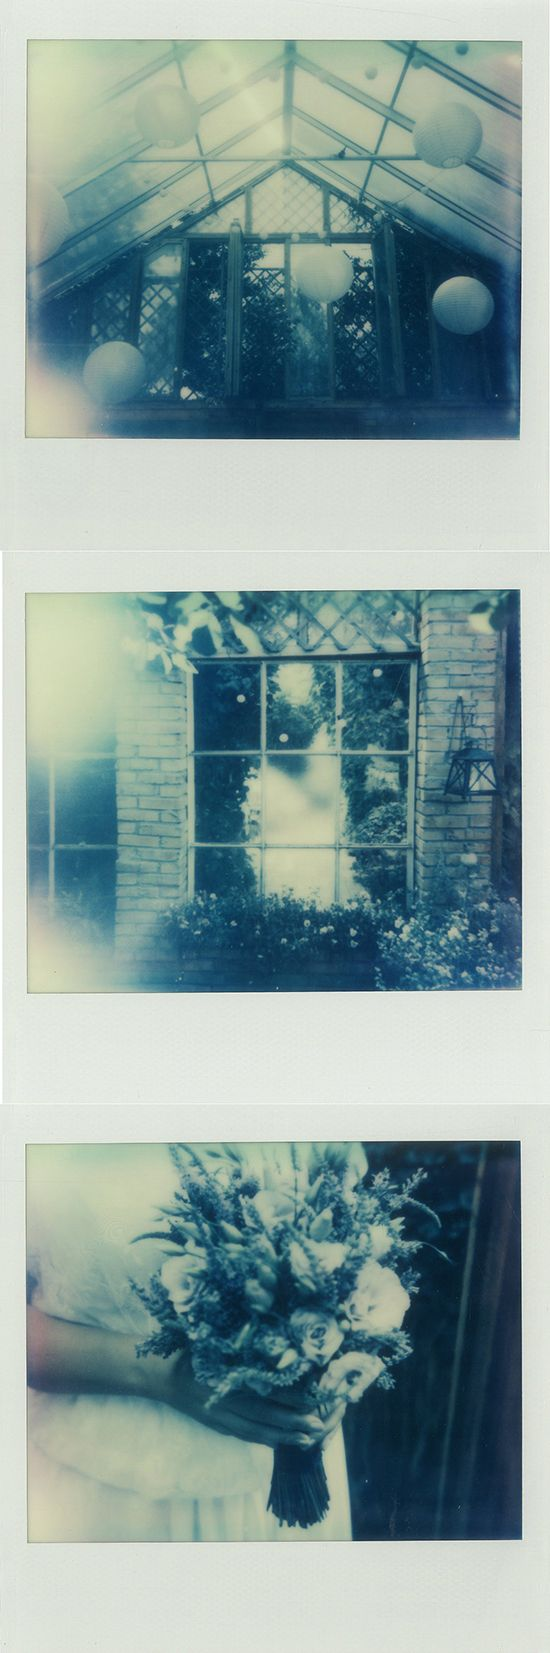 Greenhouse wedding captured on Impossible Project film #polaroid #zukistudio #impossibleproject #instantphotography